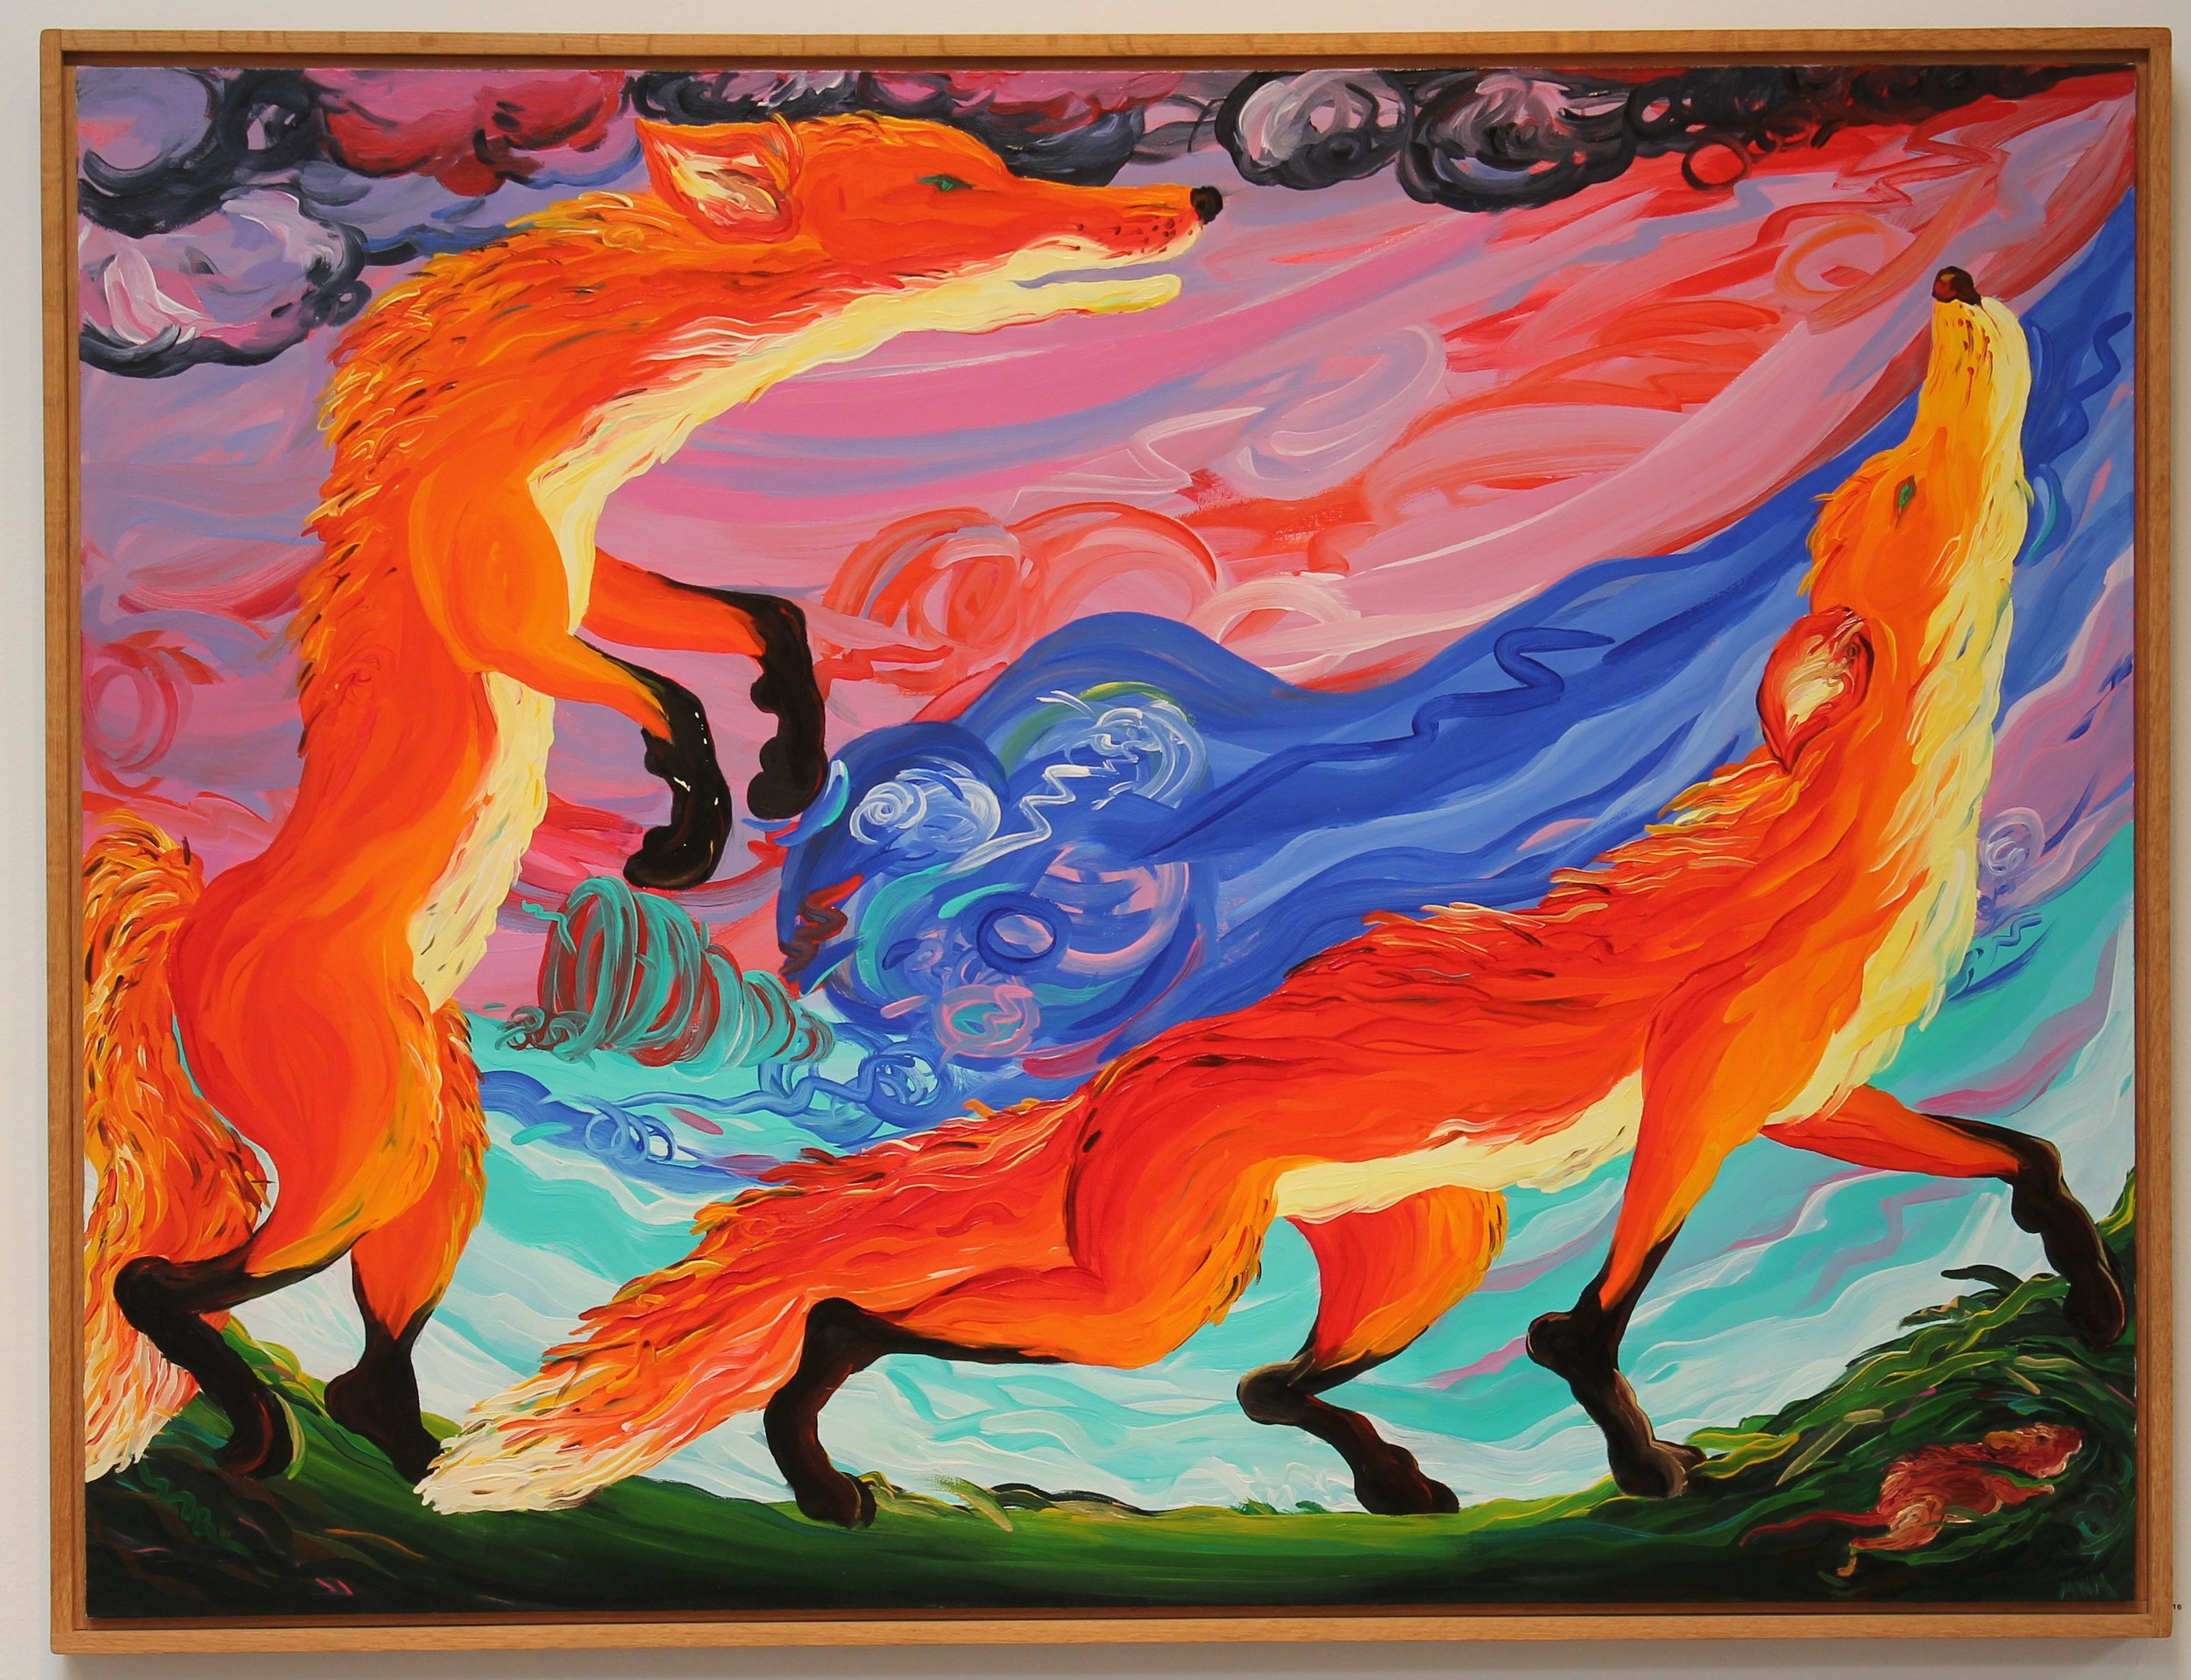 Melissa Miller, Against the Wind, 1981, oil on canvas